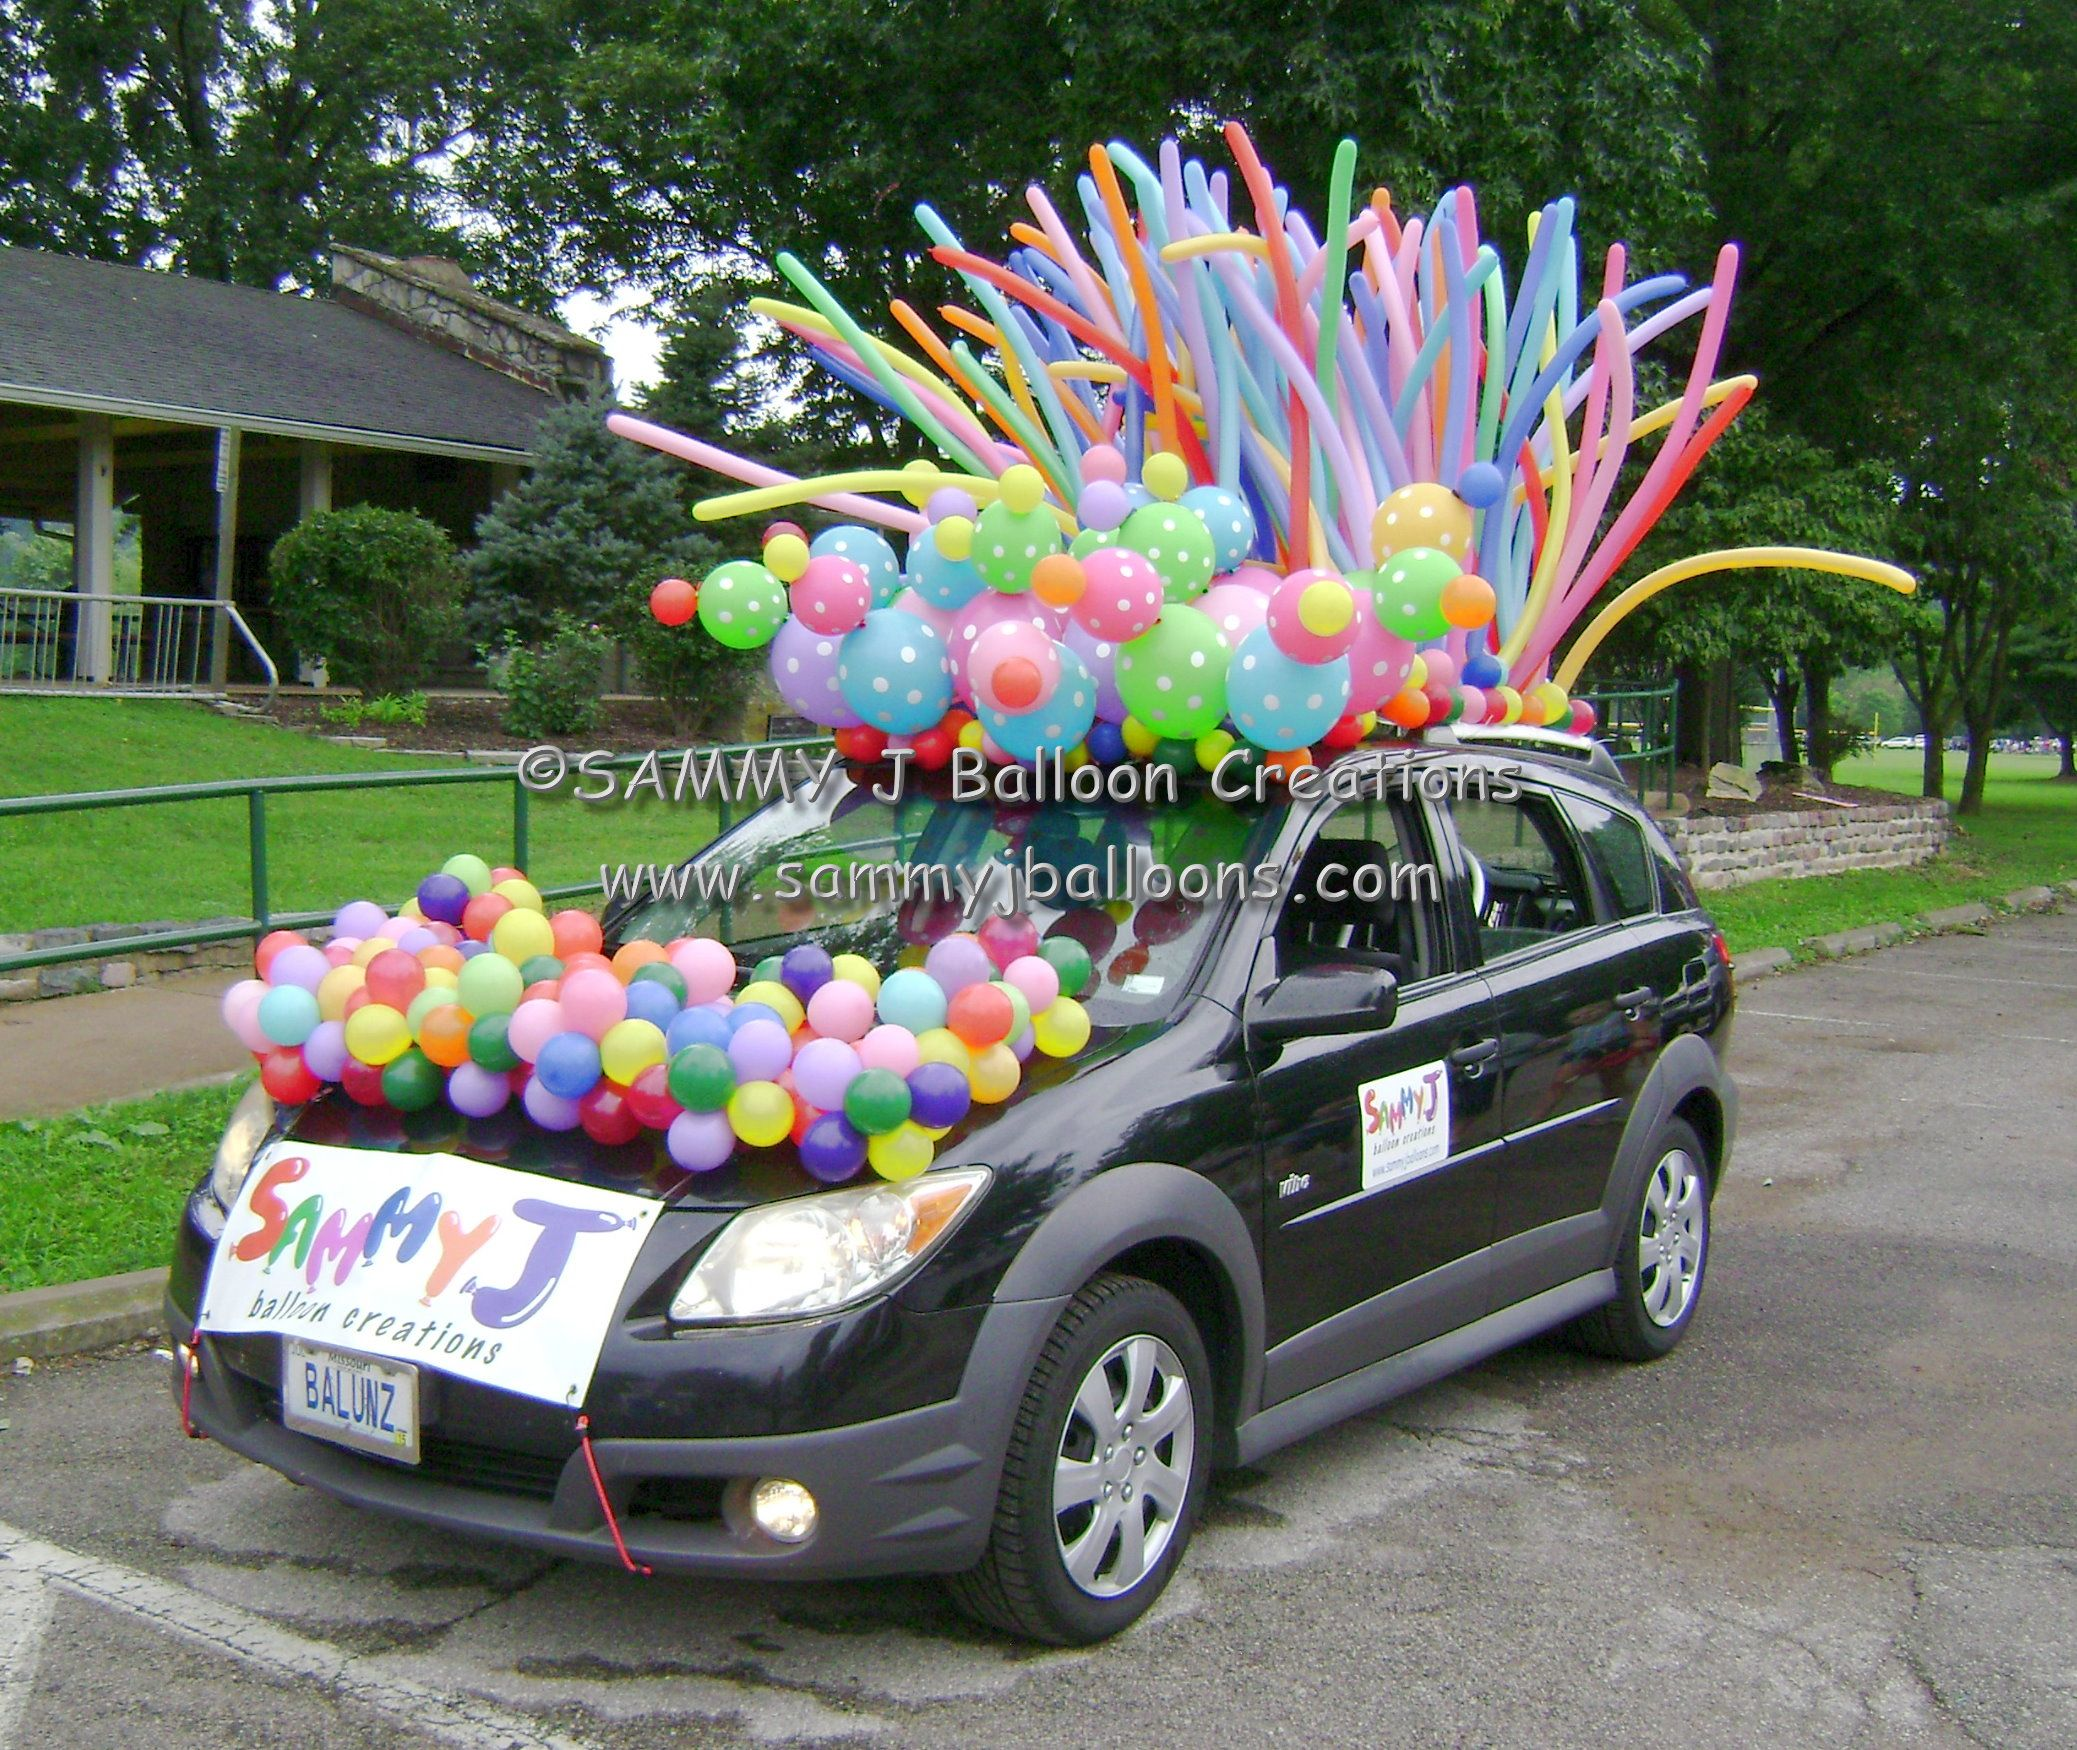 Was invited to decorate my car for a parade. the Polka Dot Link-O-Loons made all the difference.